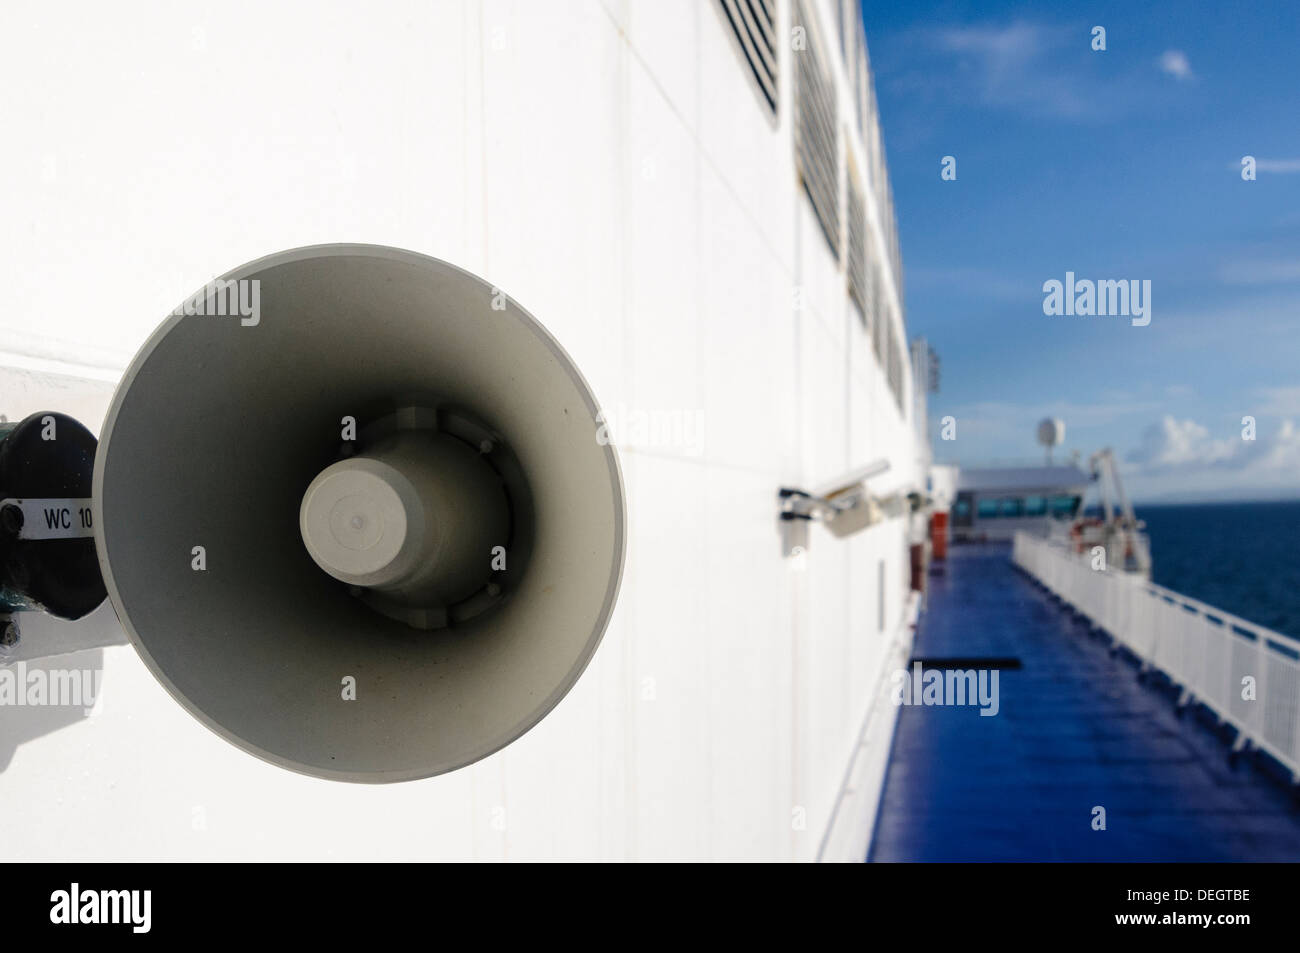 Loudspeakers on board a passenger ferry - Stock Image